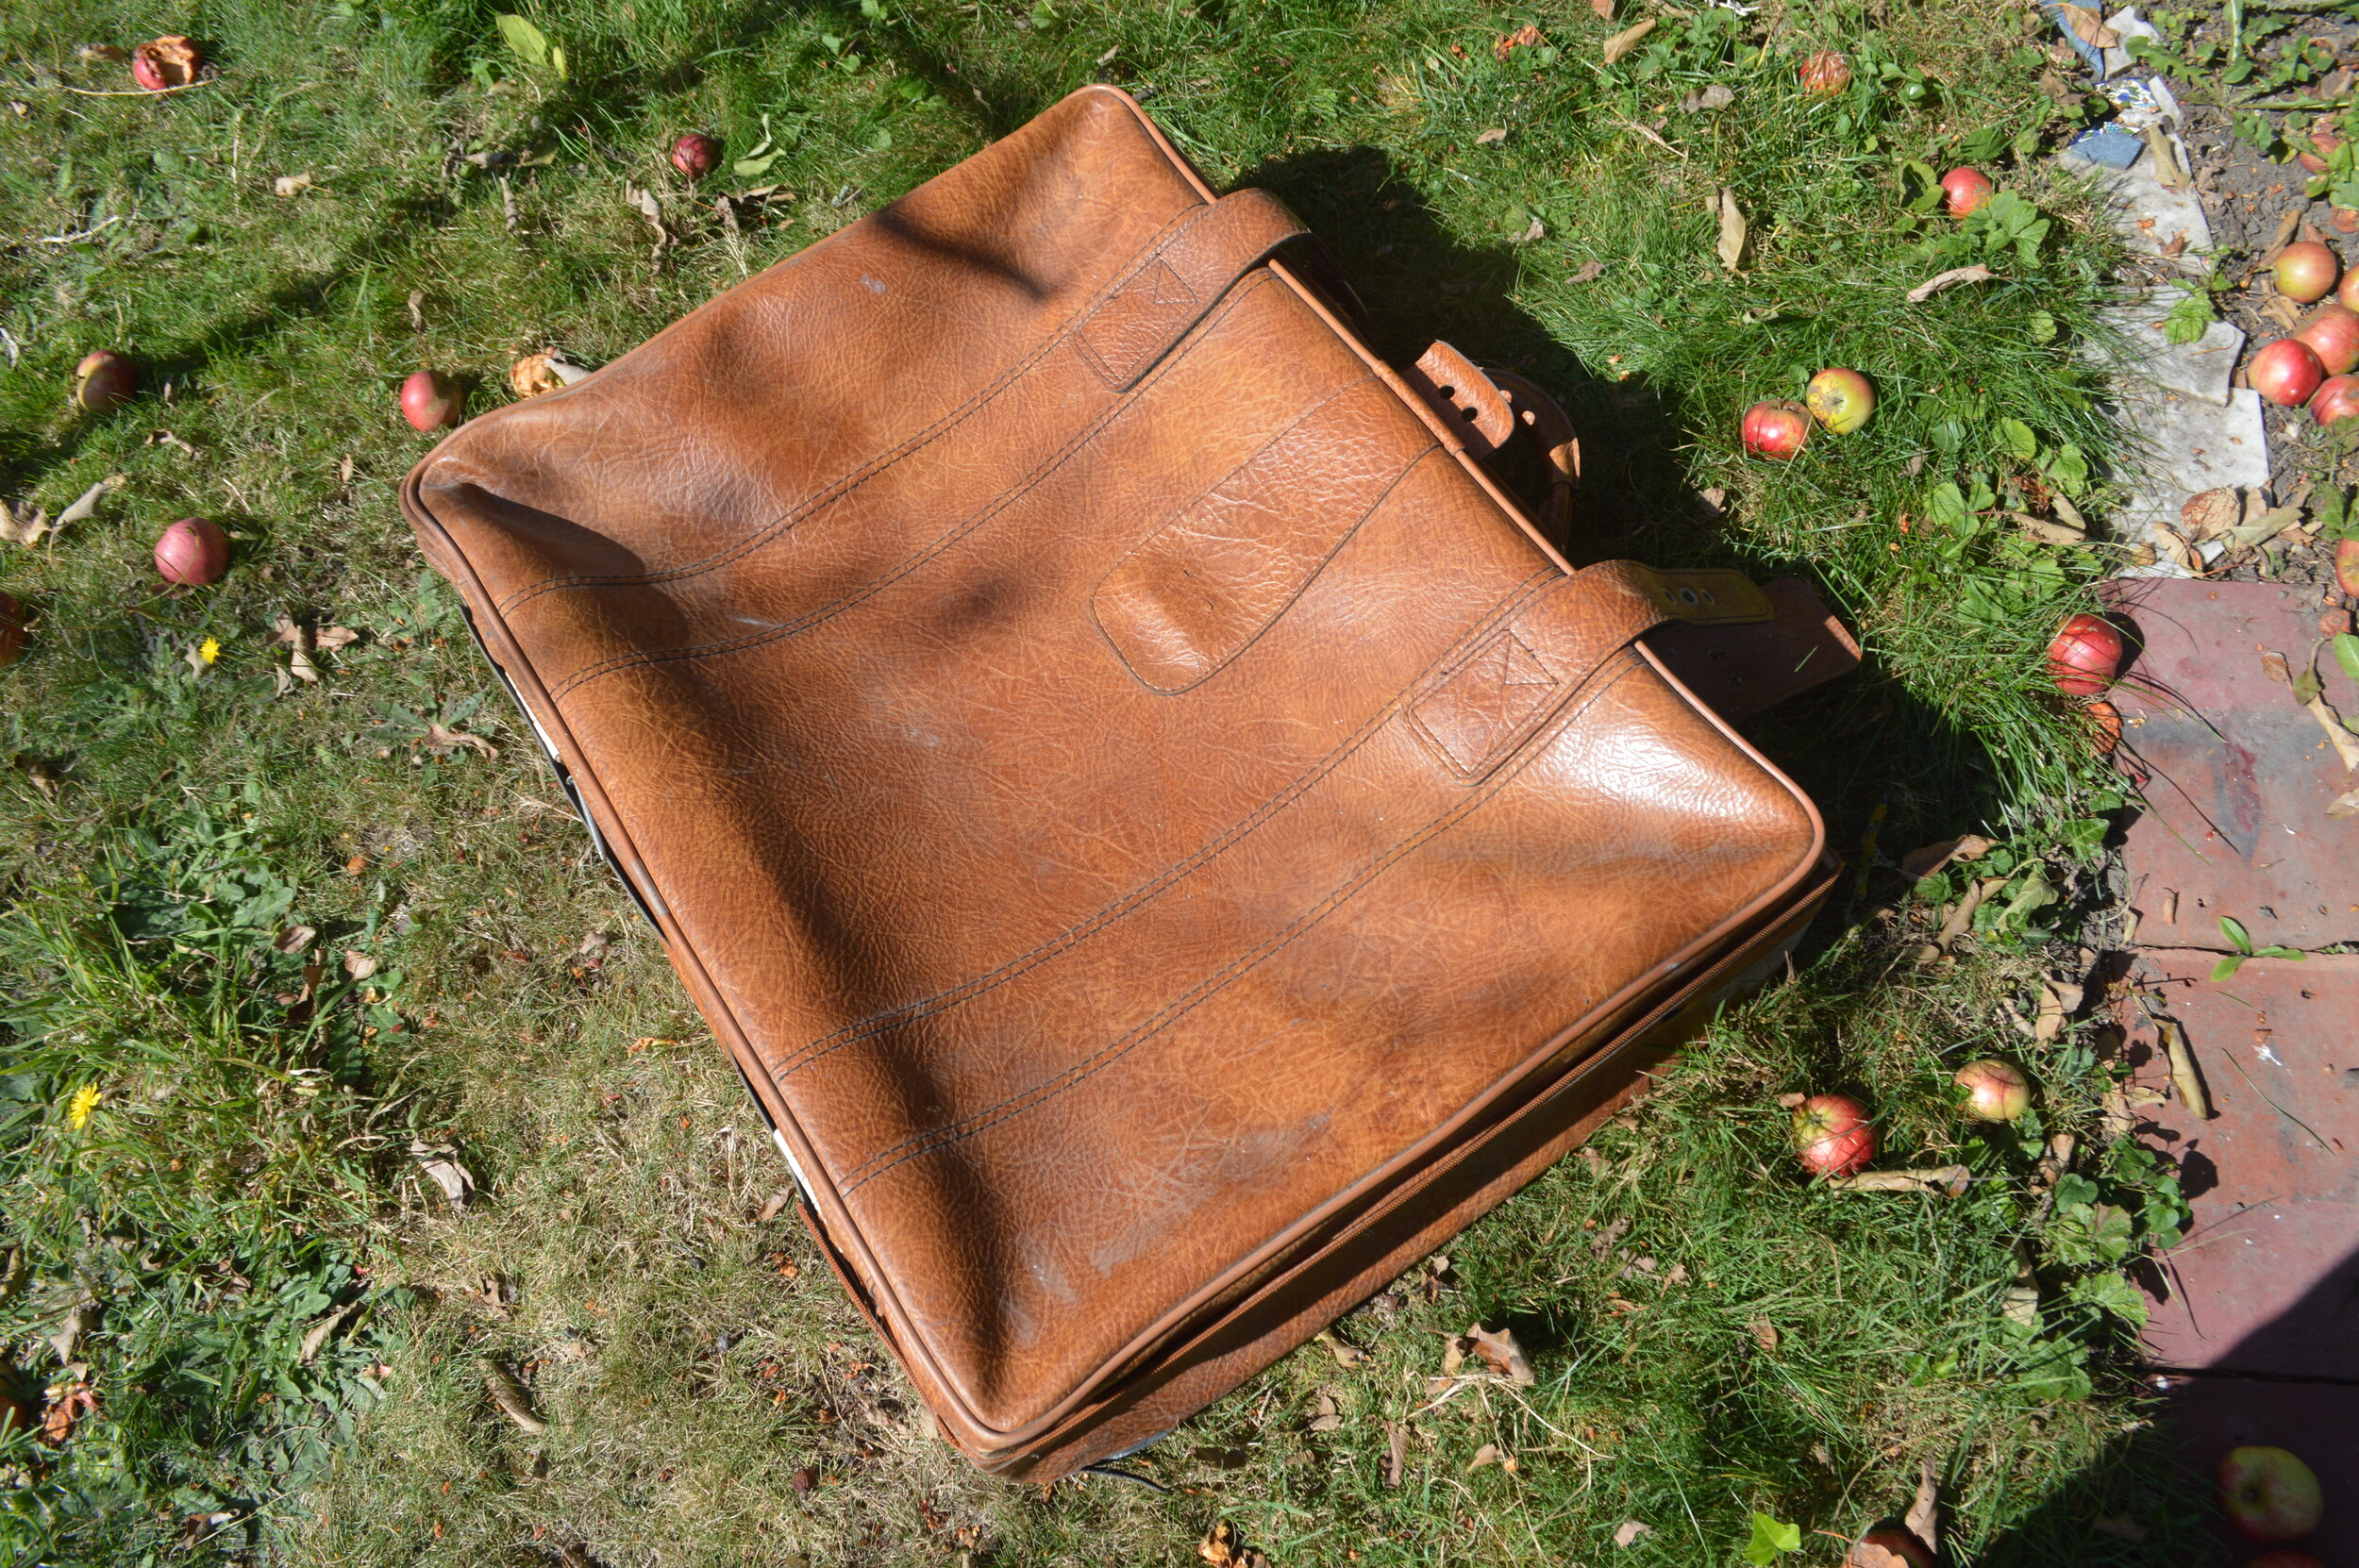 Leather suitcase on grass